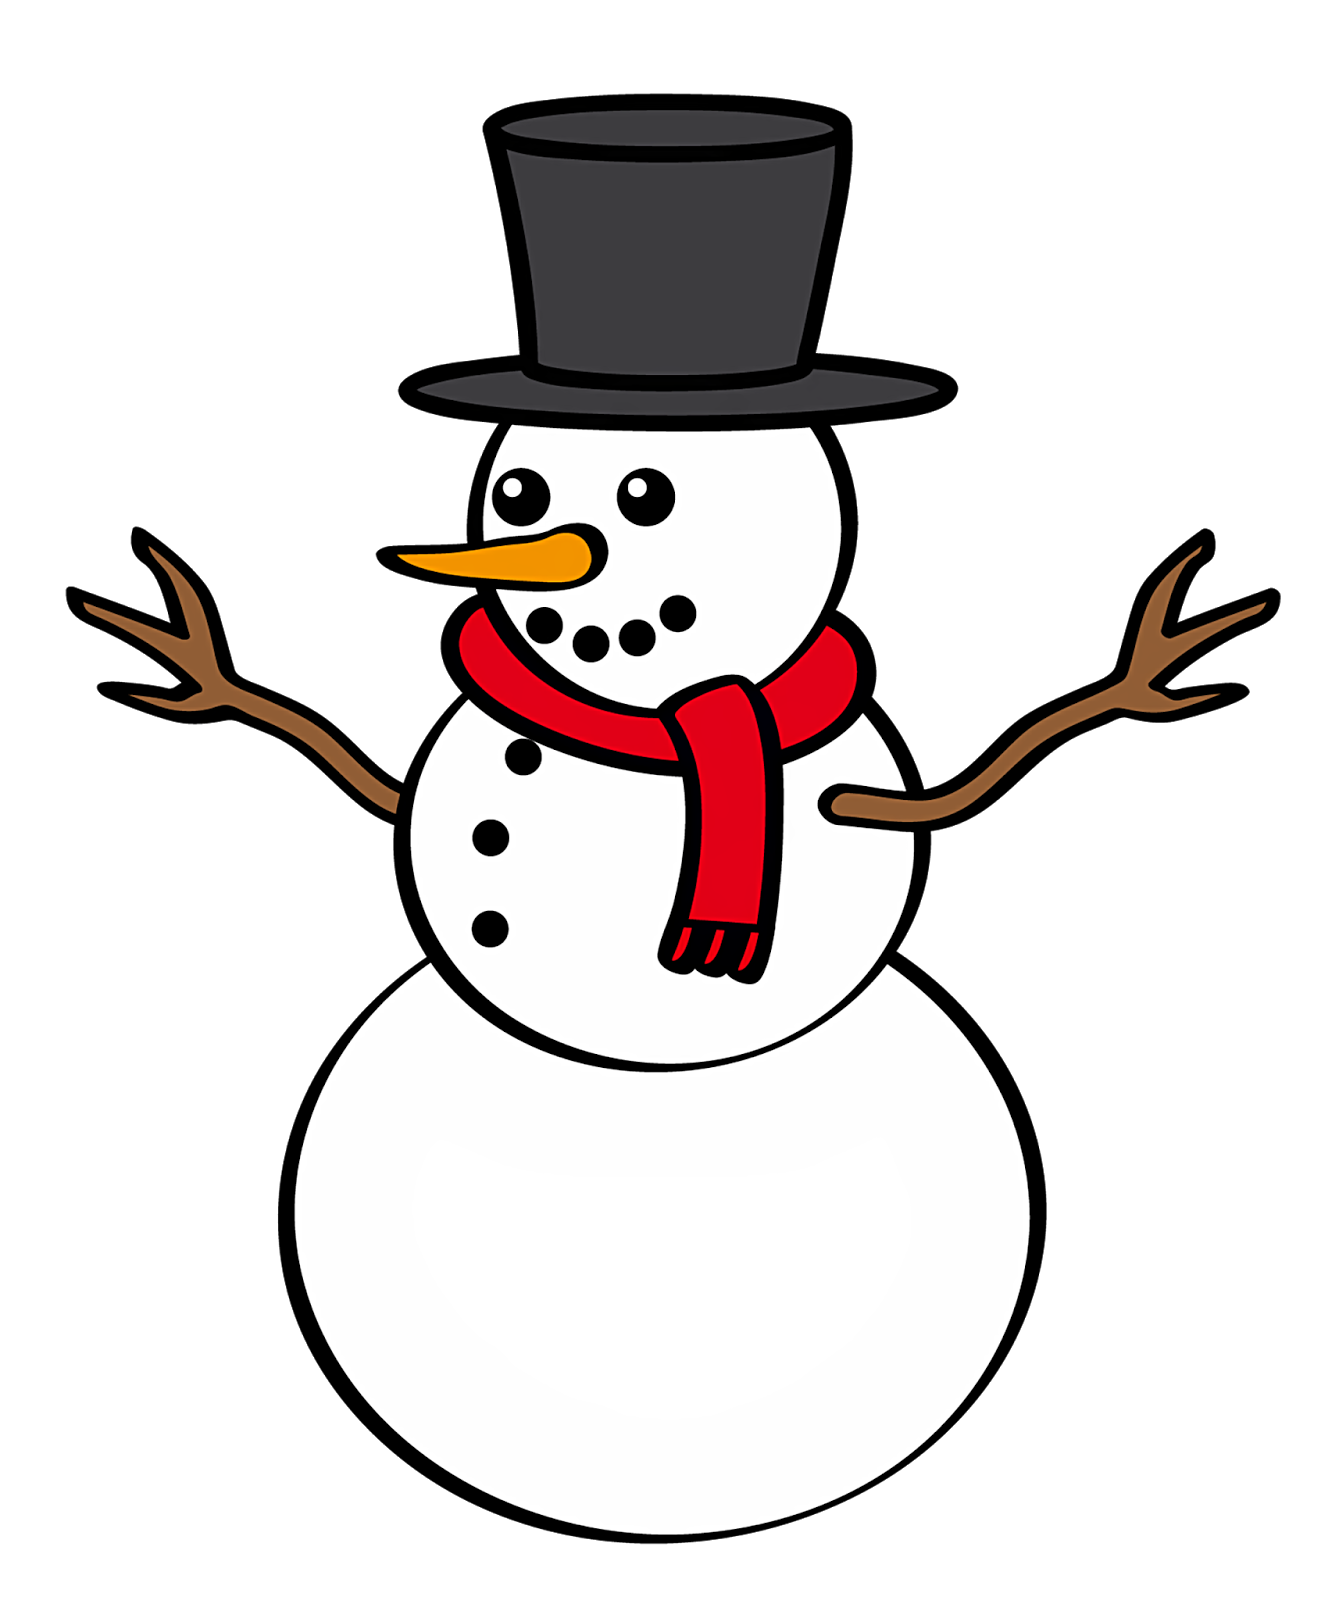 collection of free. Sunglasses clipart snowman